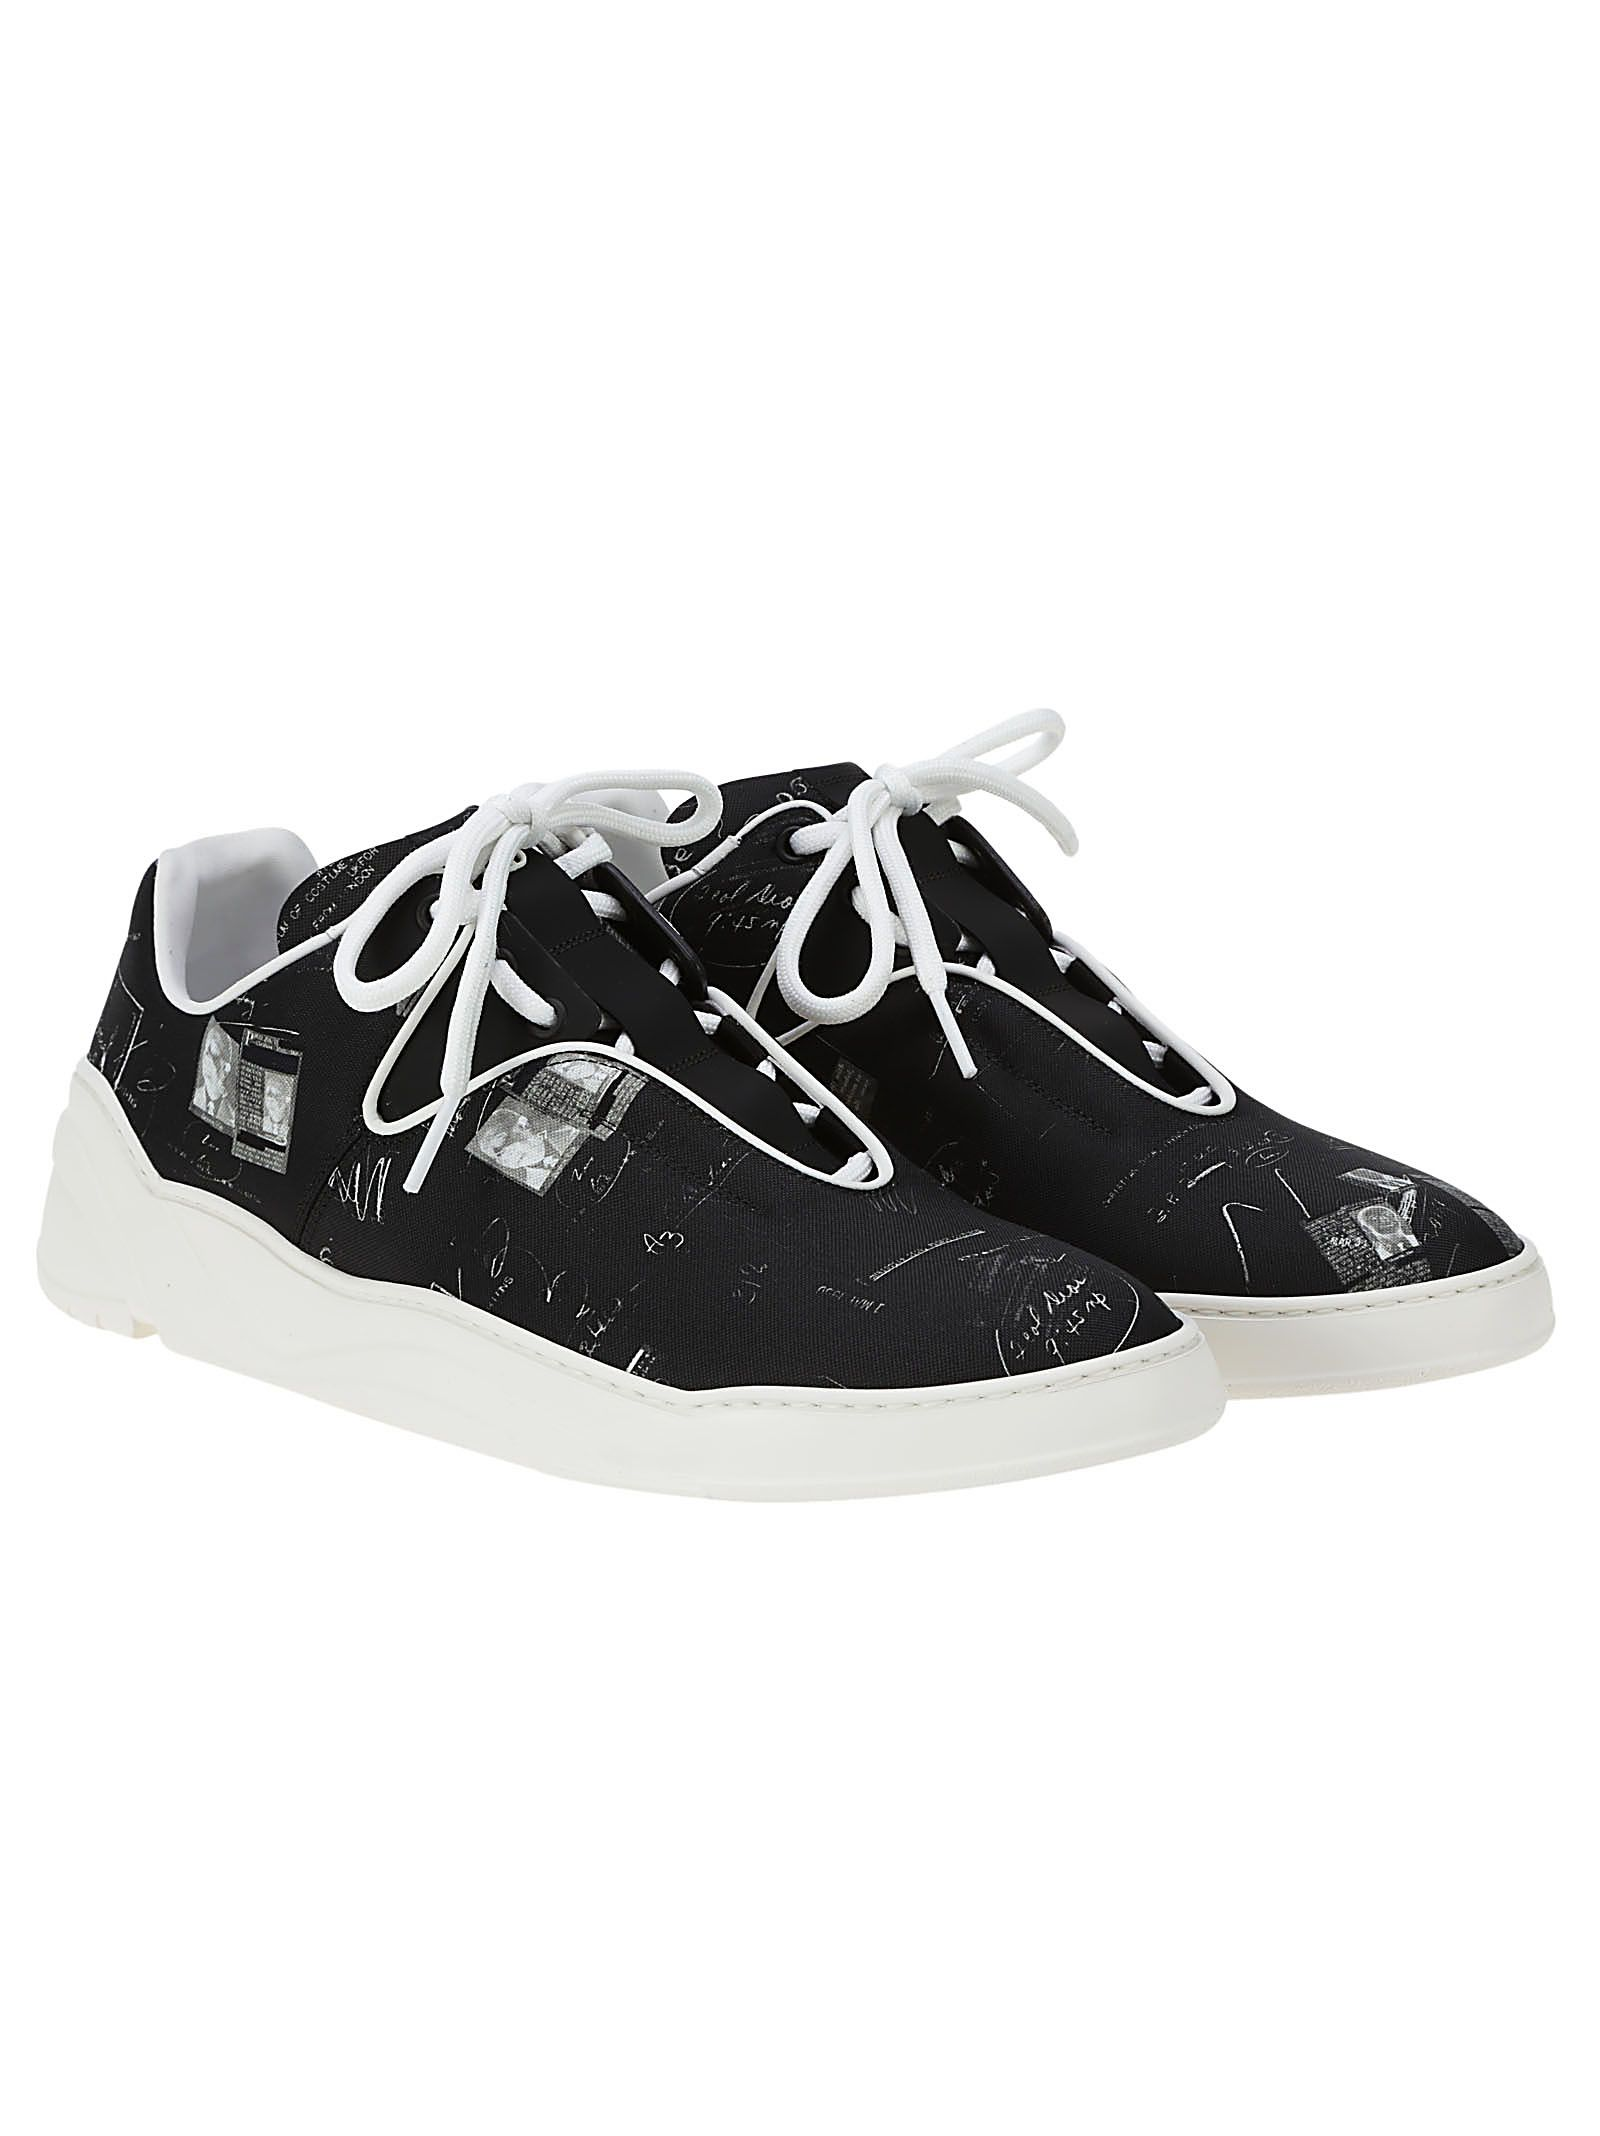 Dior Homme Printed Lace-up Sneakers